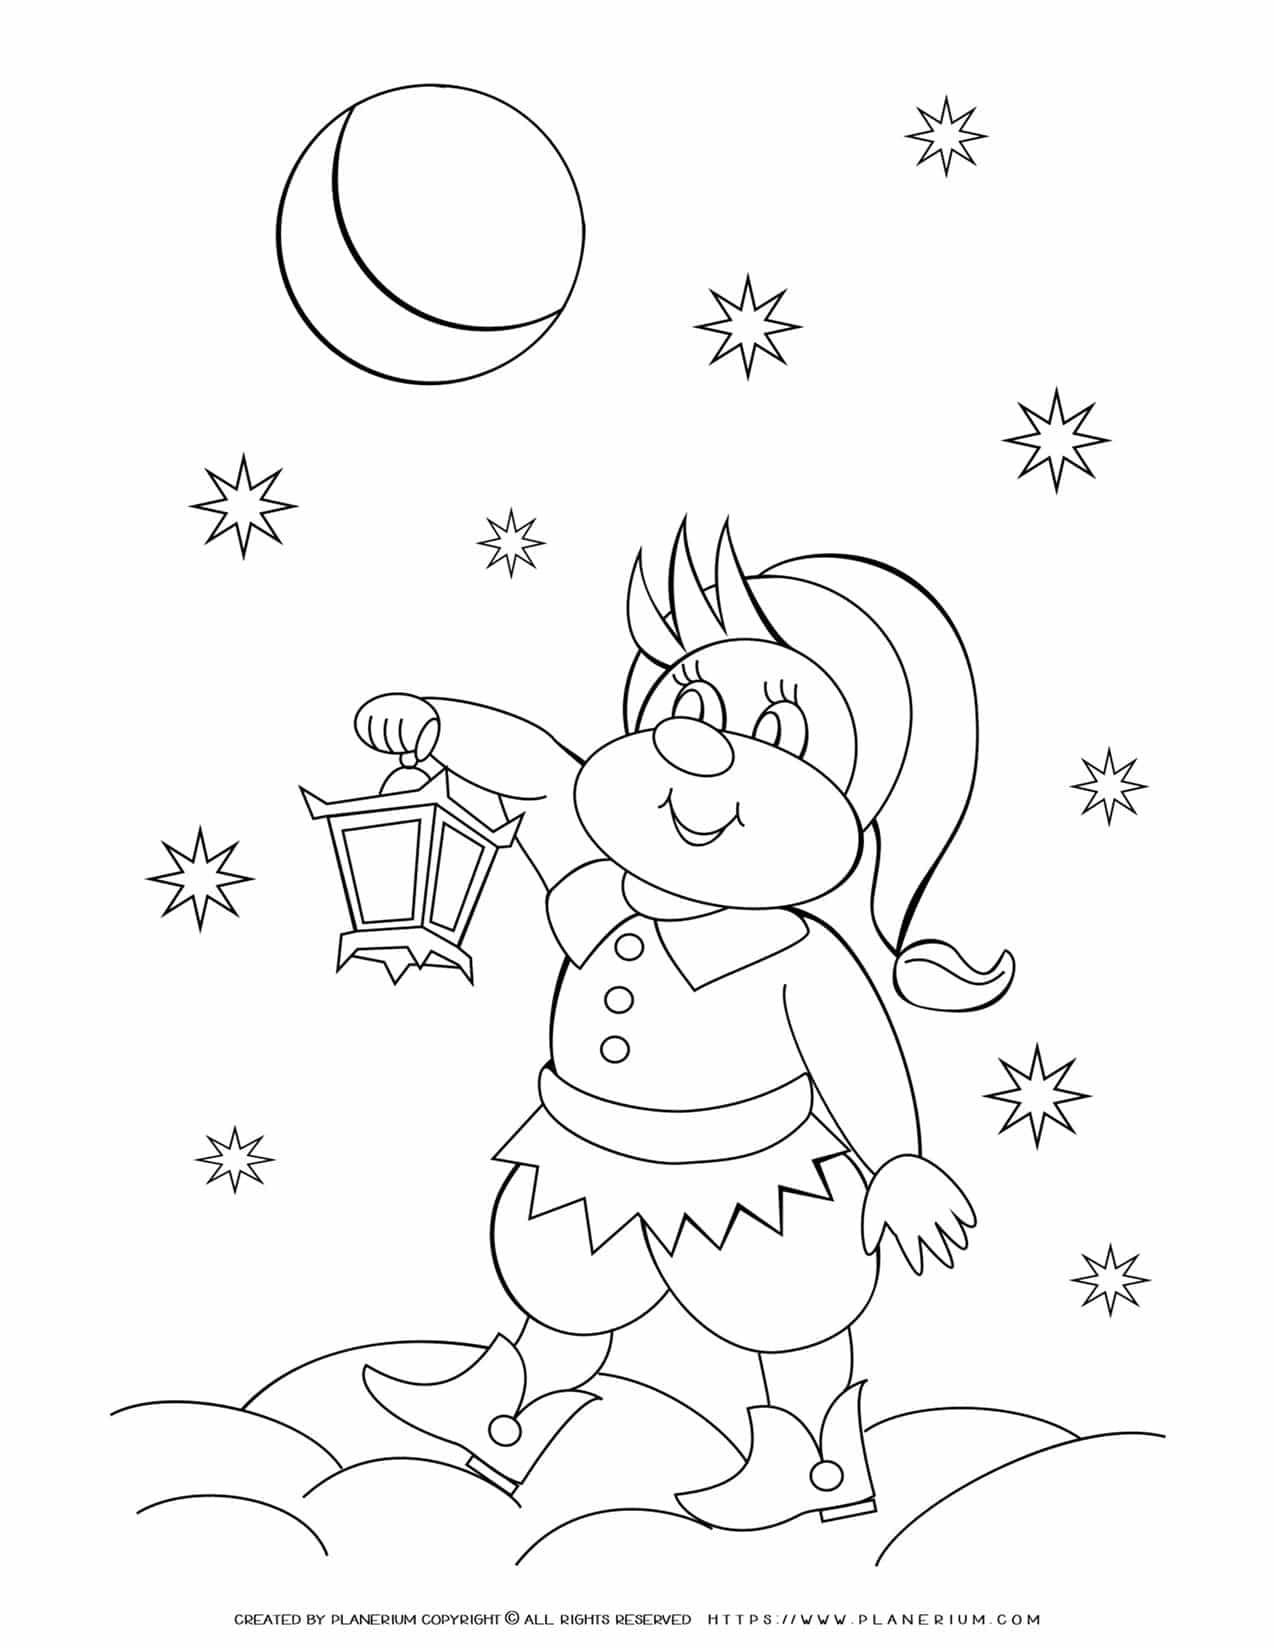 Elf Holding Lantern At Night - Winter Coloring Page | Planerium